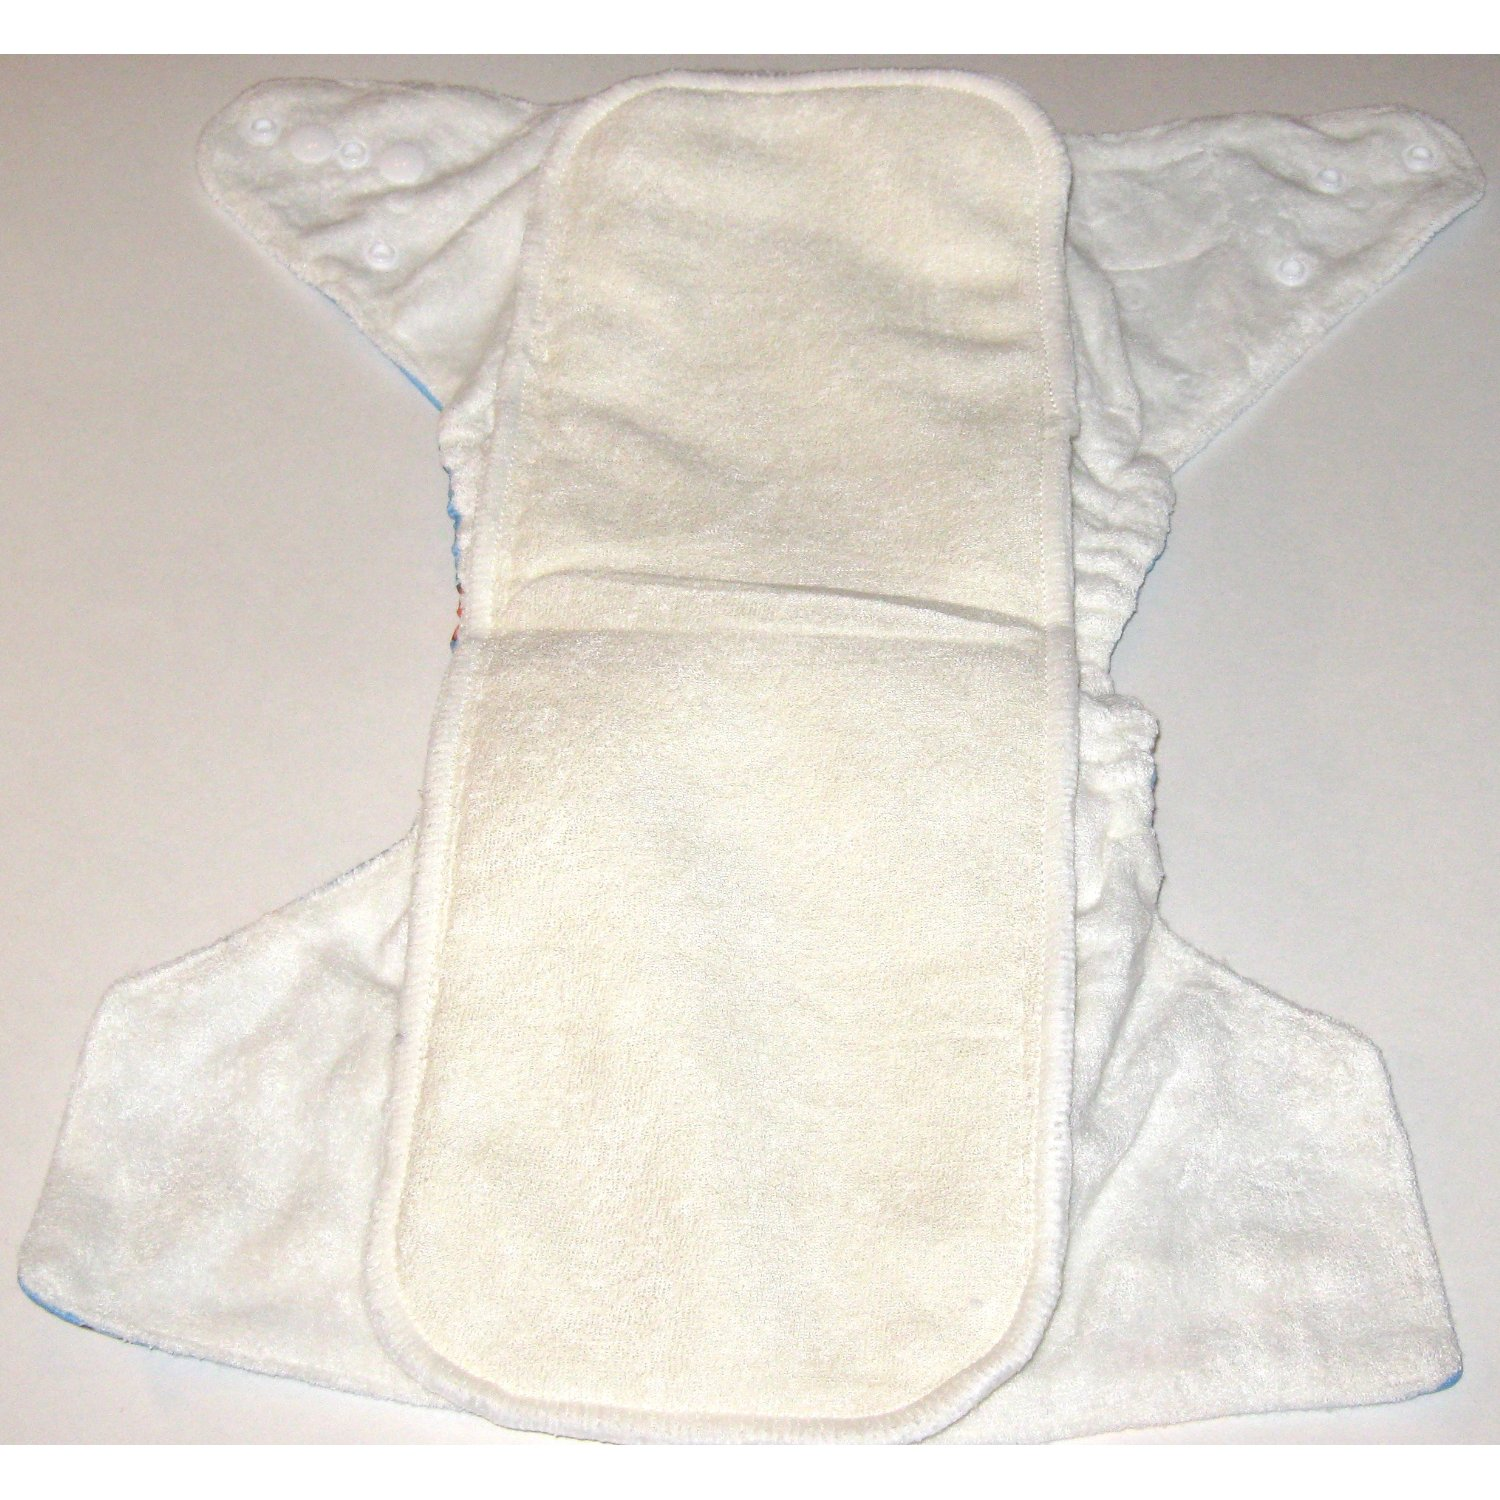 Piddly-Winx Bamboo Pocket Diaper - Inside